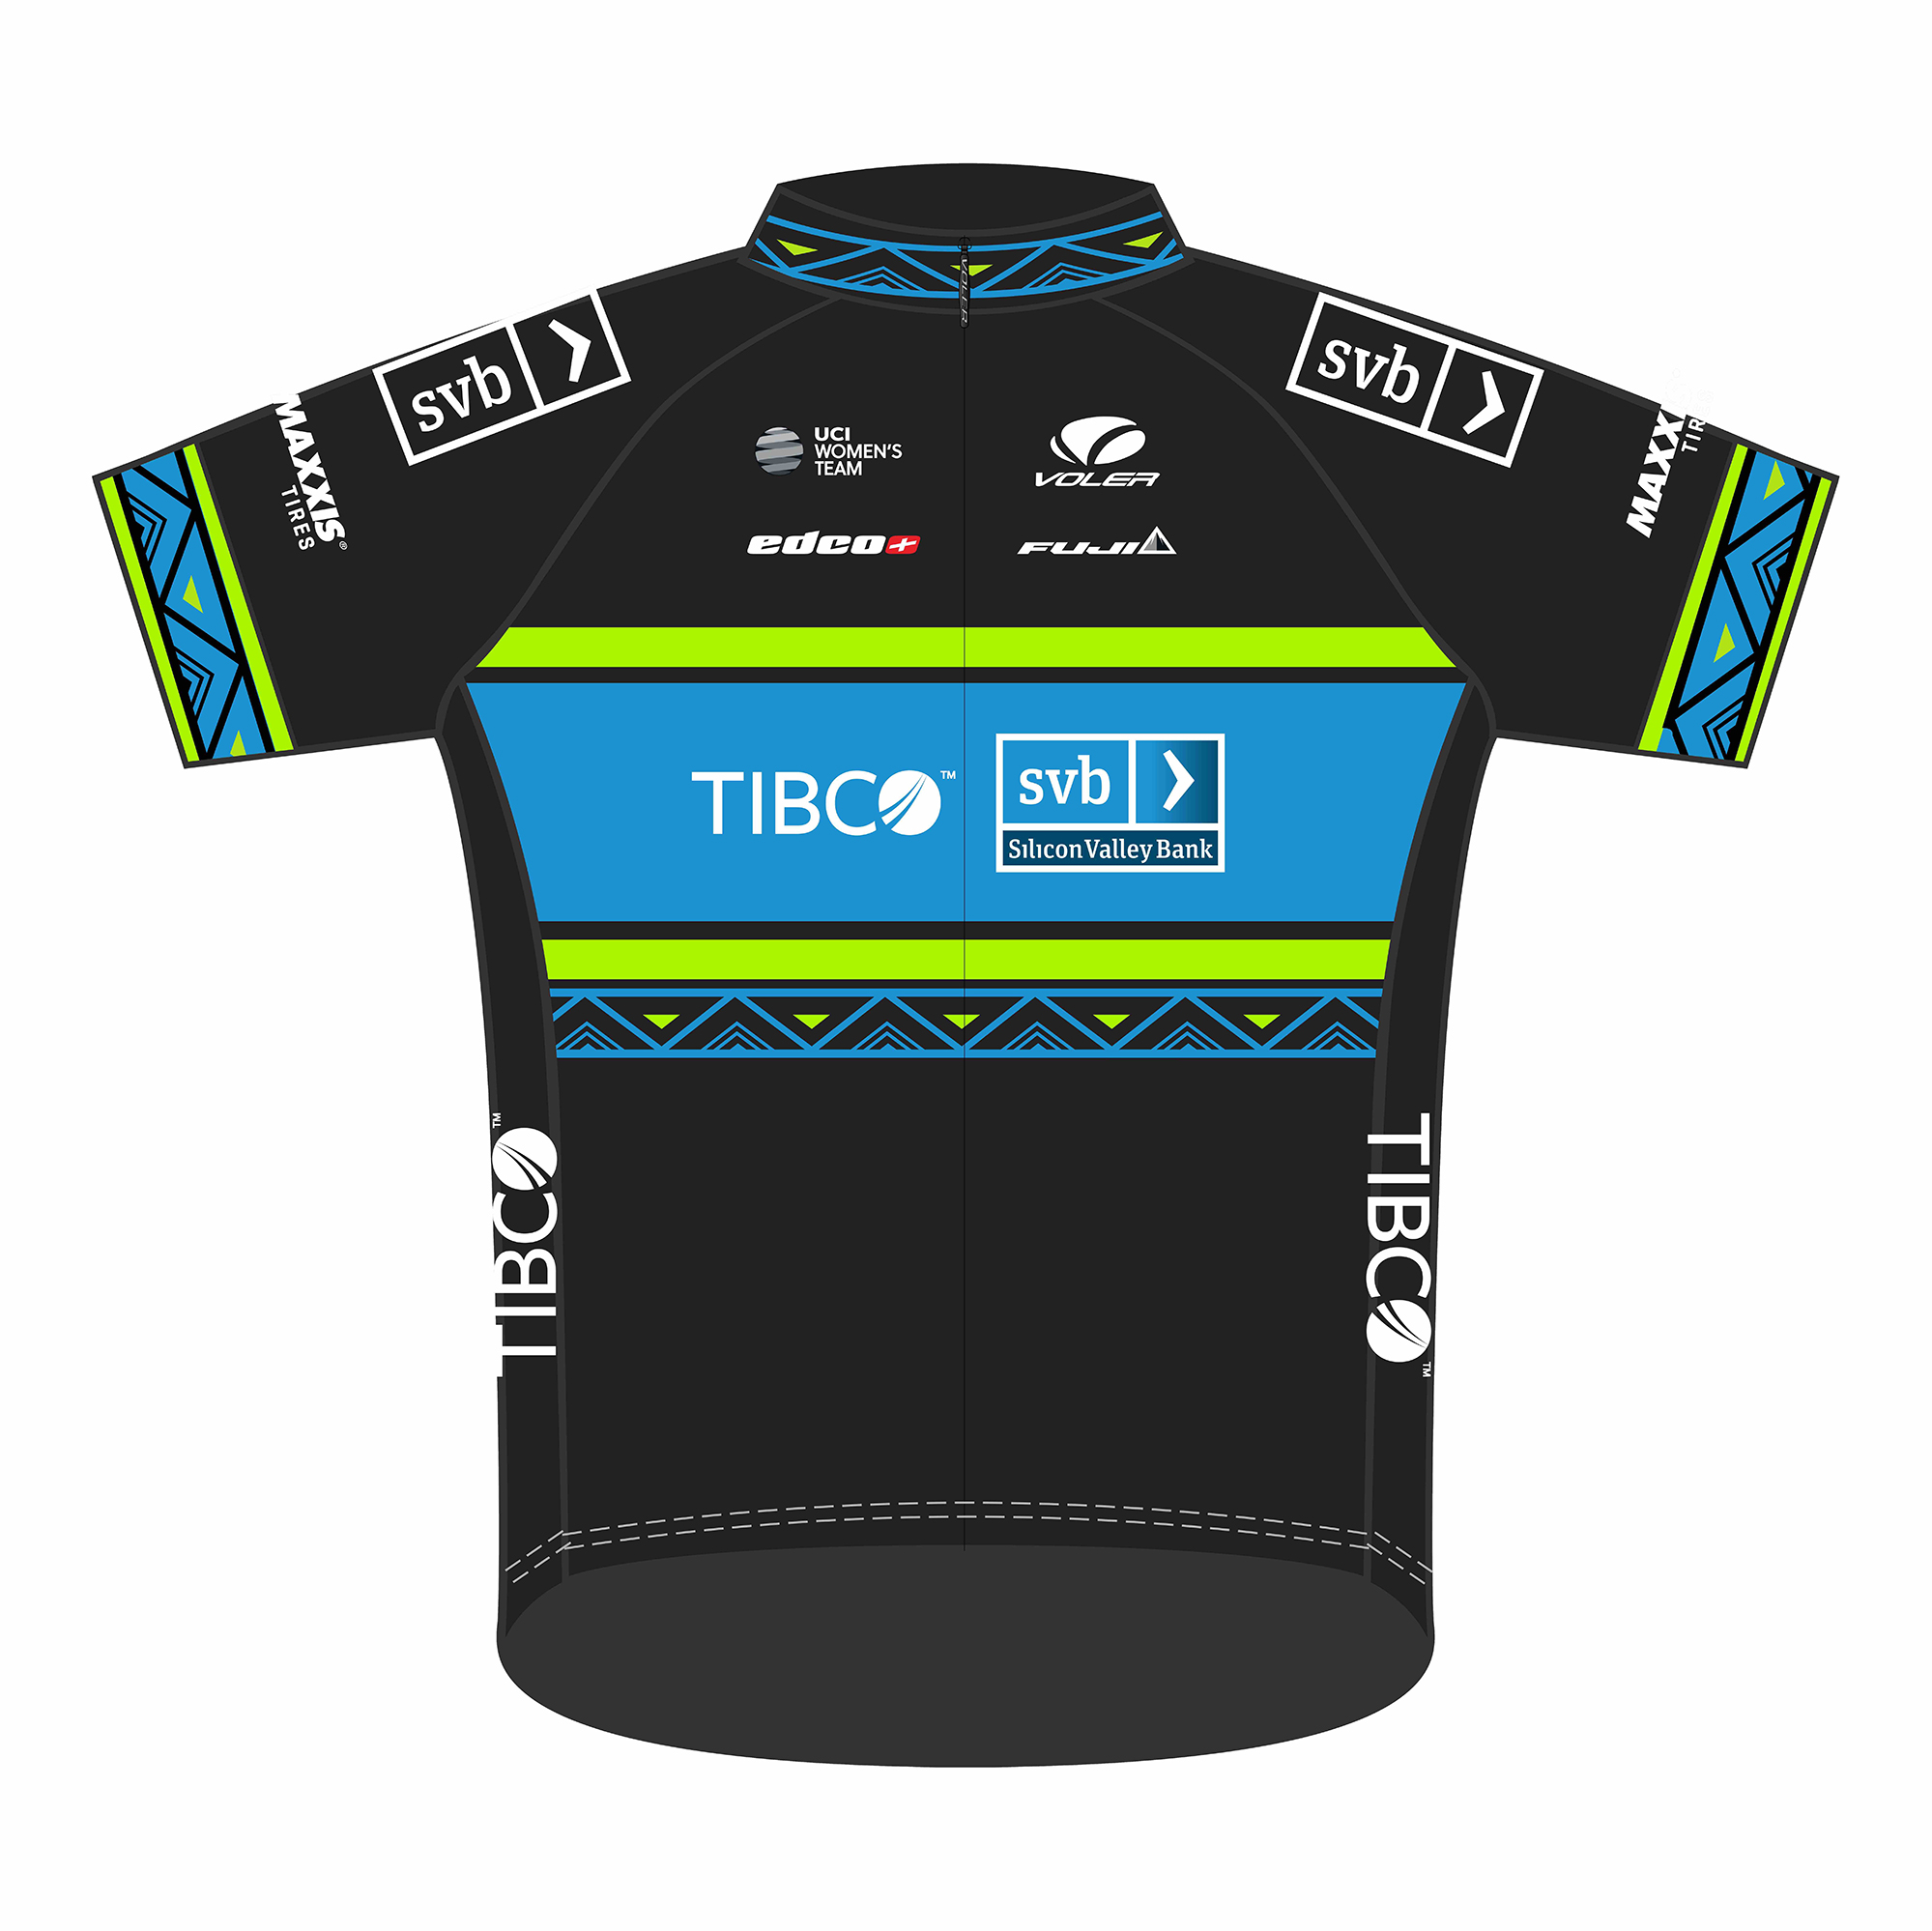 TIBCO-SVB 2019 jersey artwork_Team TIBCO.jpg